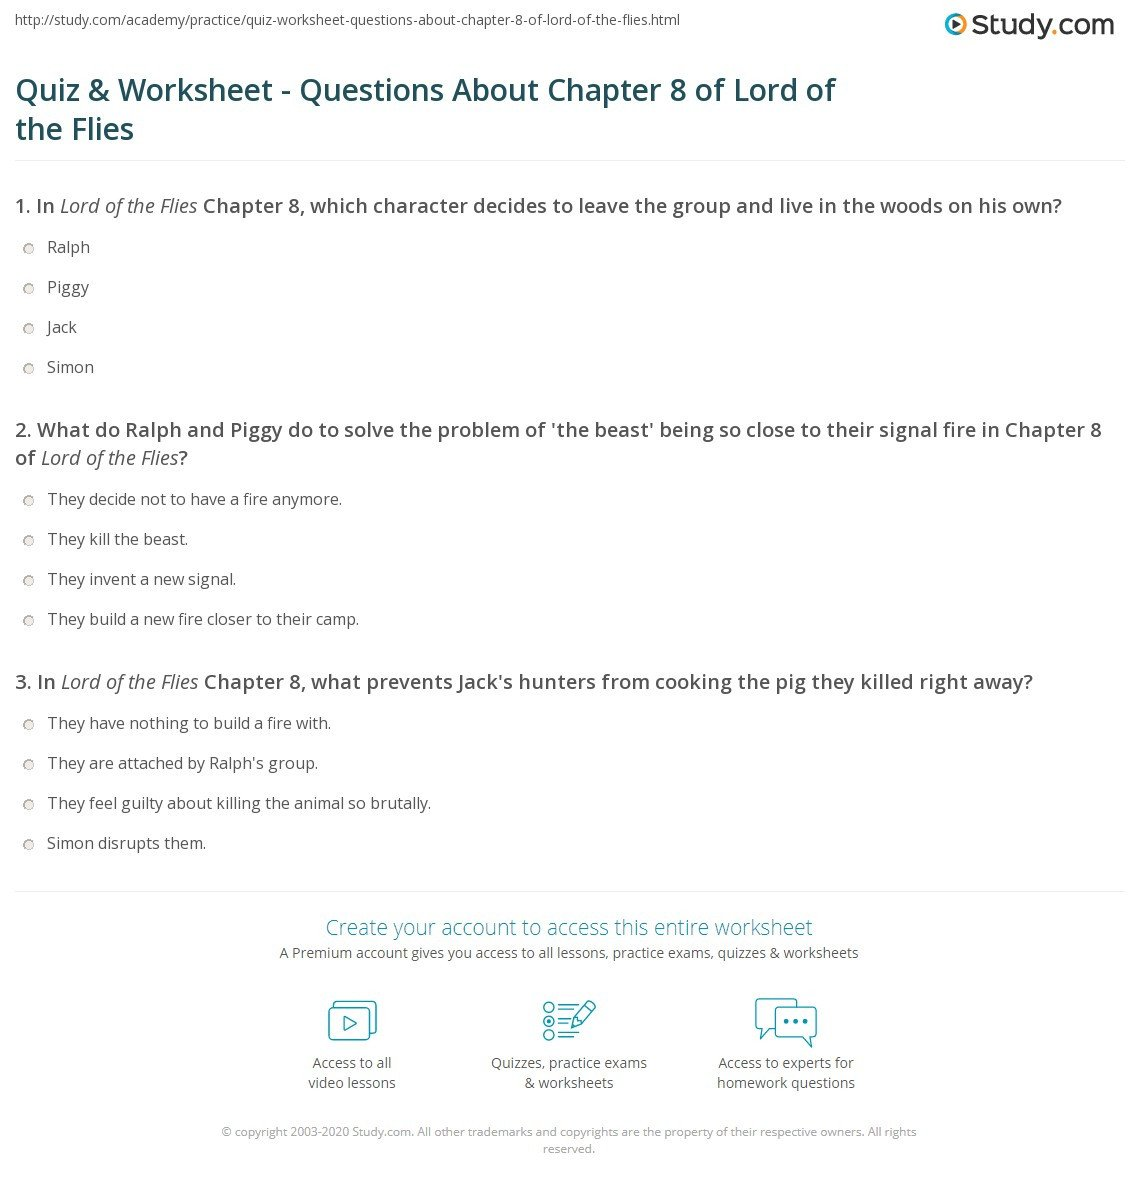 quiz worksheet questions about chapter 8 of lord of the flies